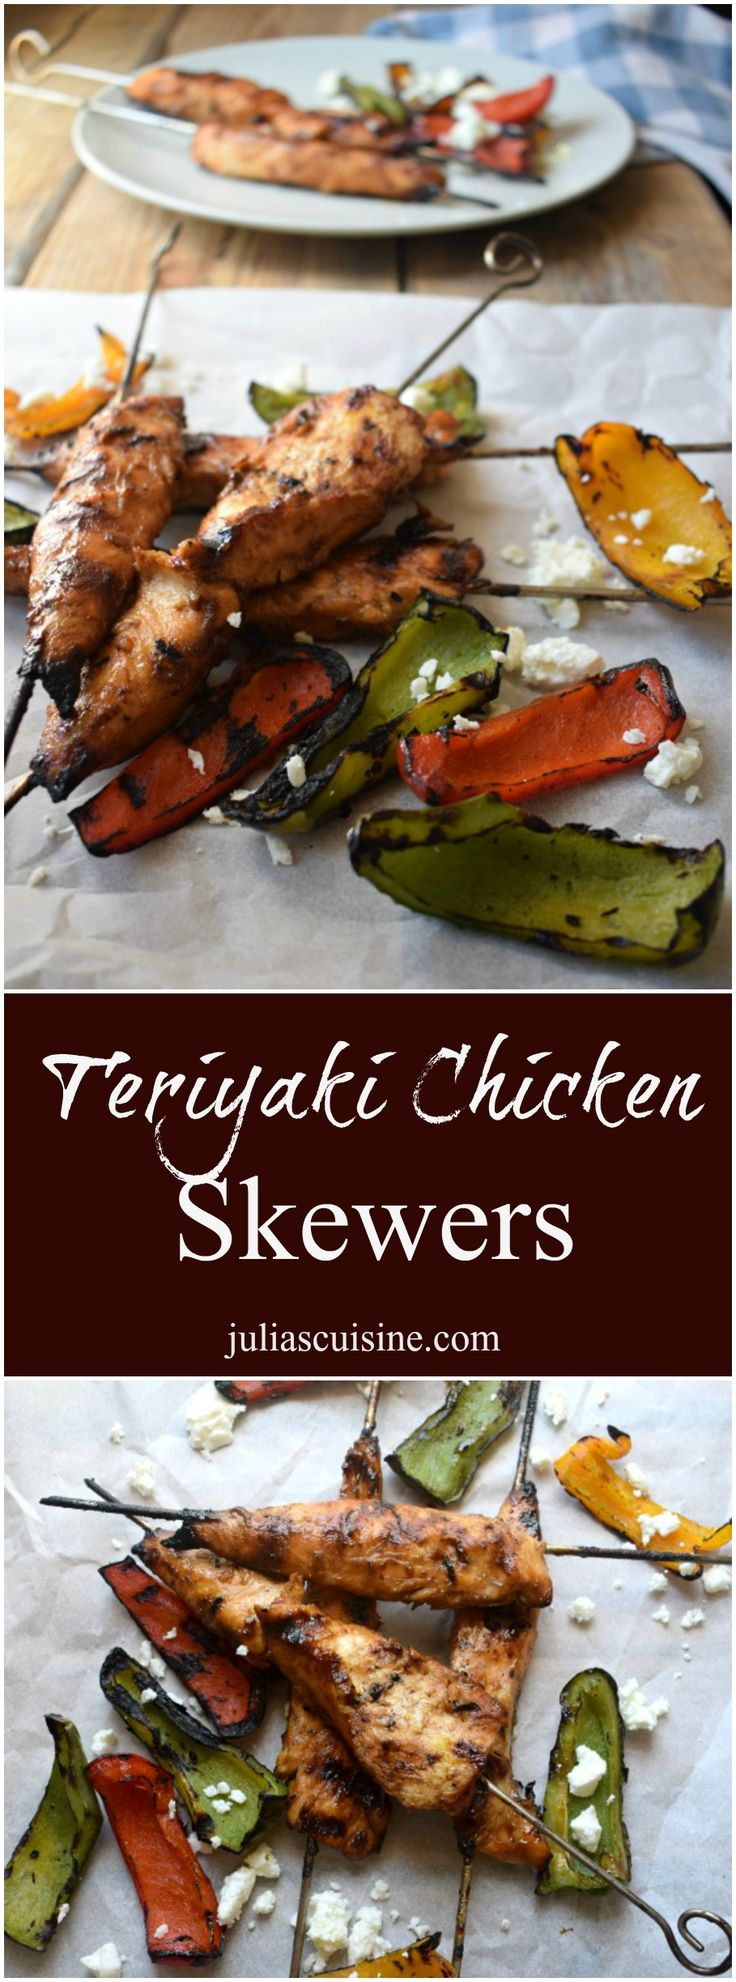 Teriyaki Chicken Skewers are perfect for any summer time backyard barbecue!  http://www.juliascuisine.com/home/teriyaki-chicken-skewers-charred-pepper-salad